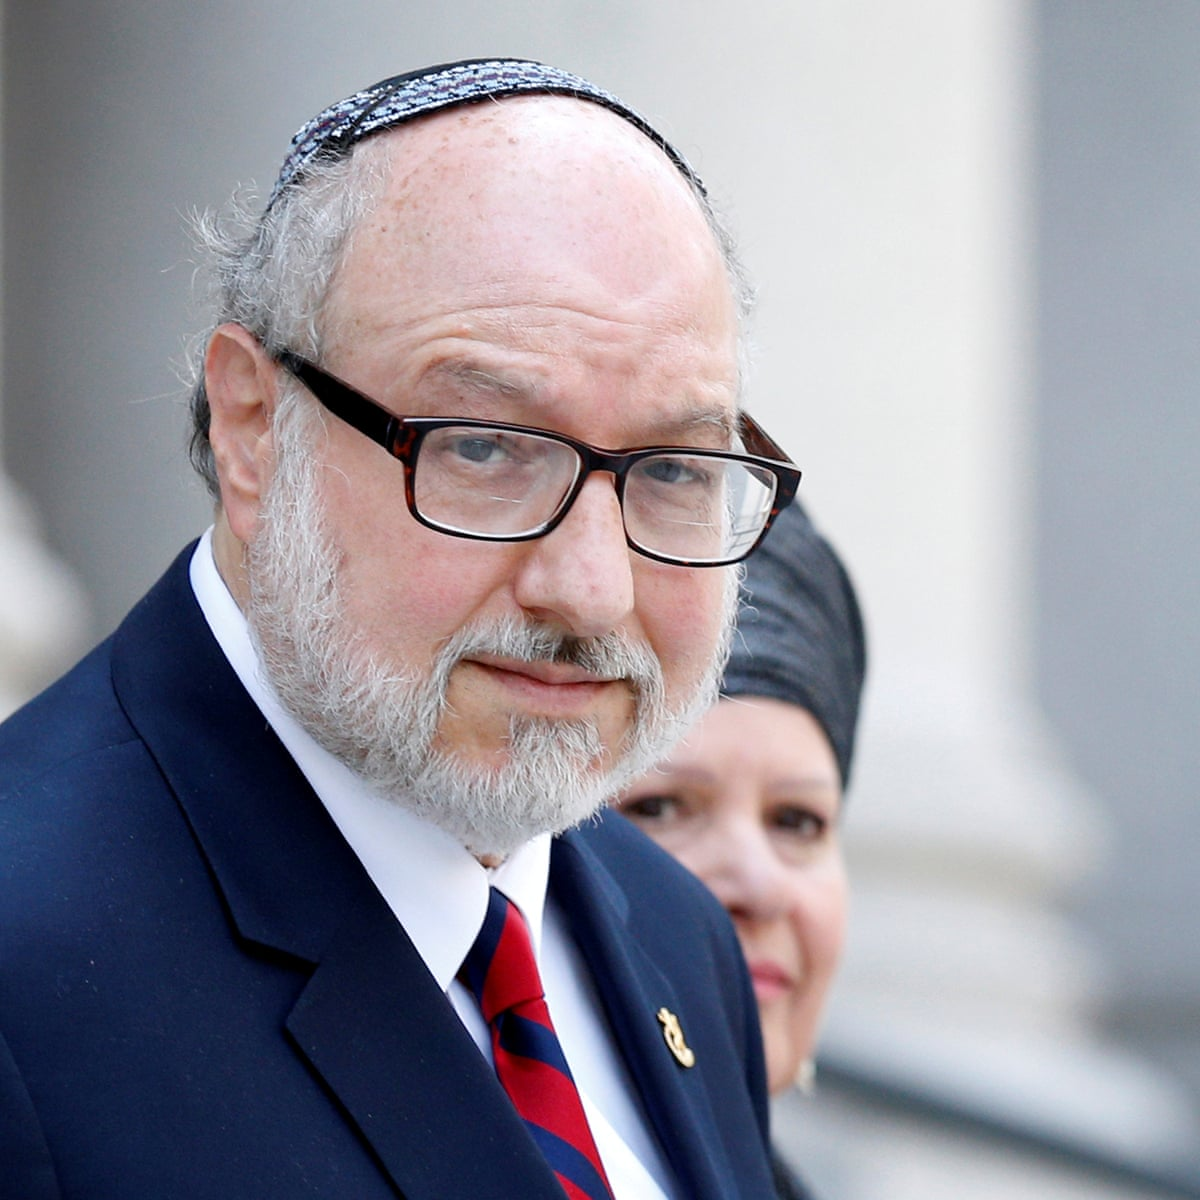 Spy Jonathan Pollard expected to fly to Israel after US lifts parole | US  news | The Guardian